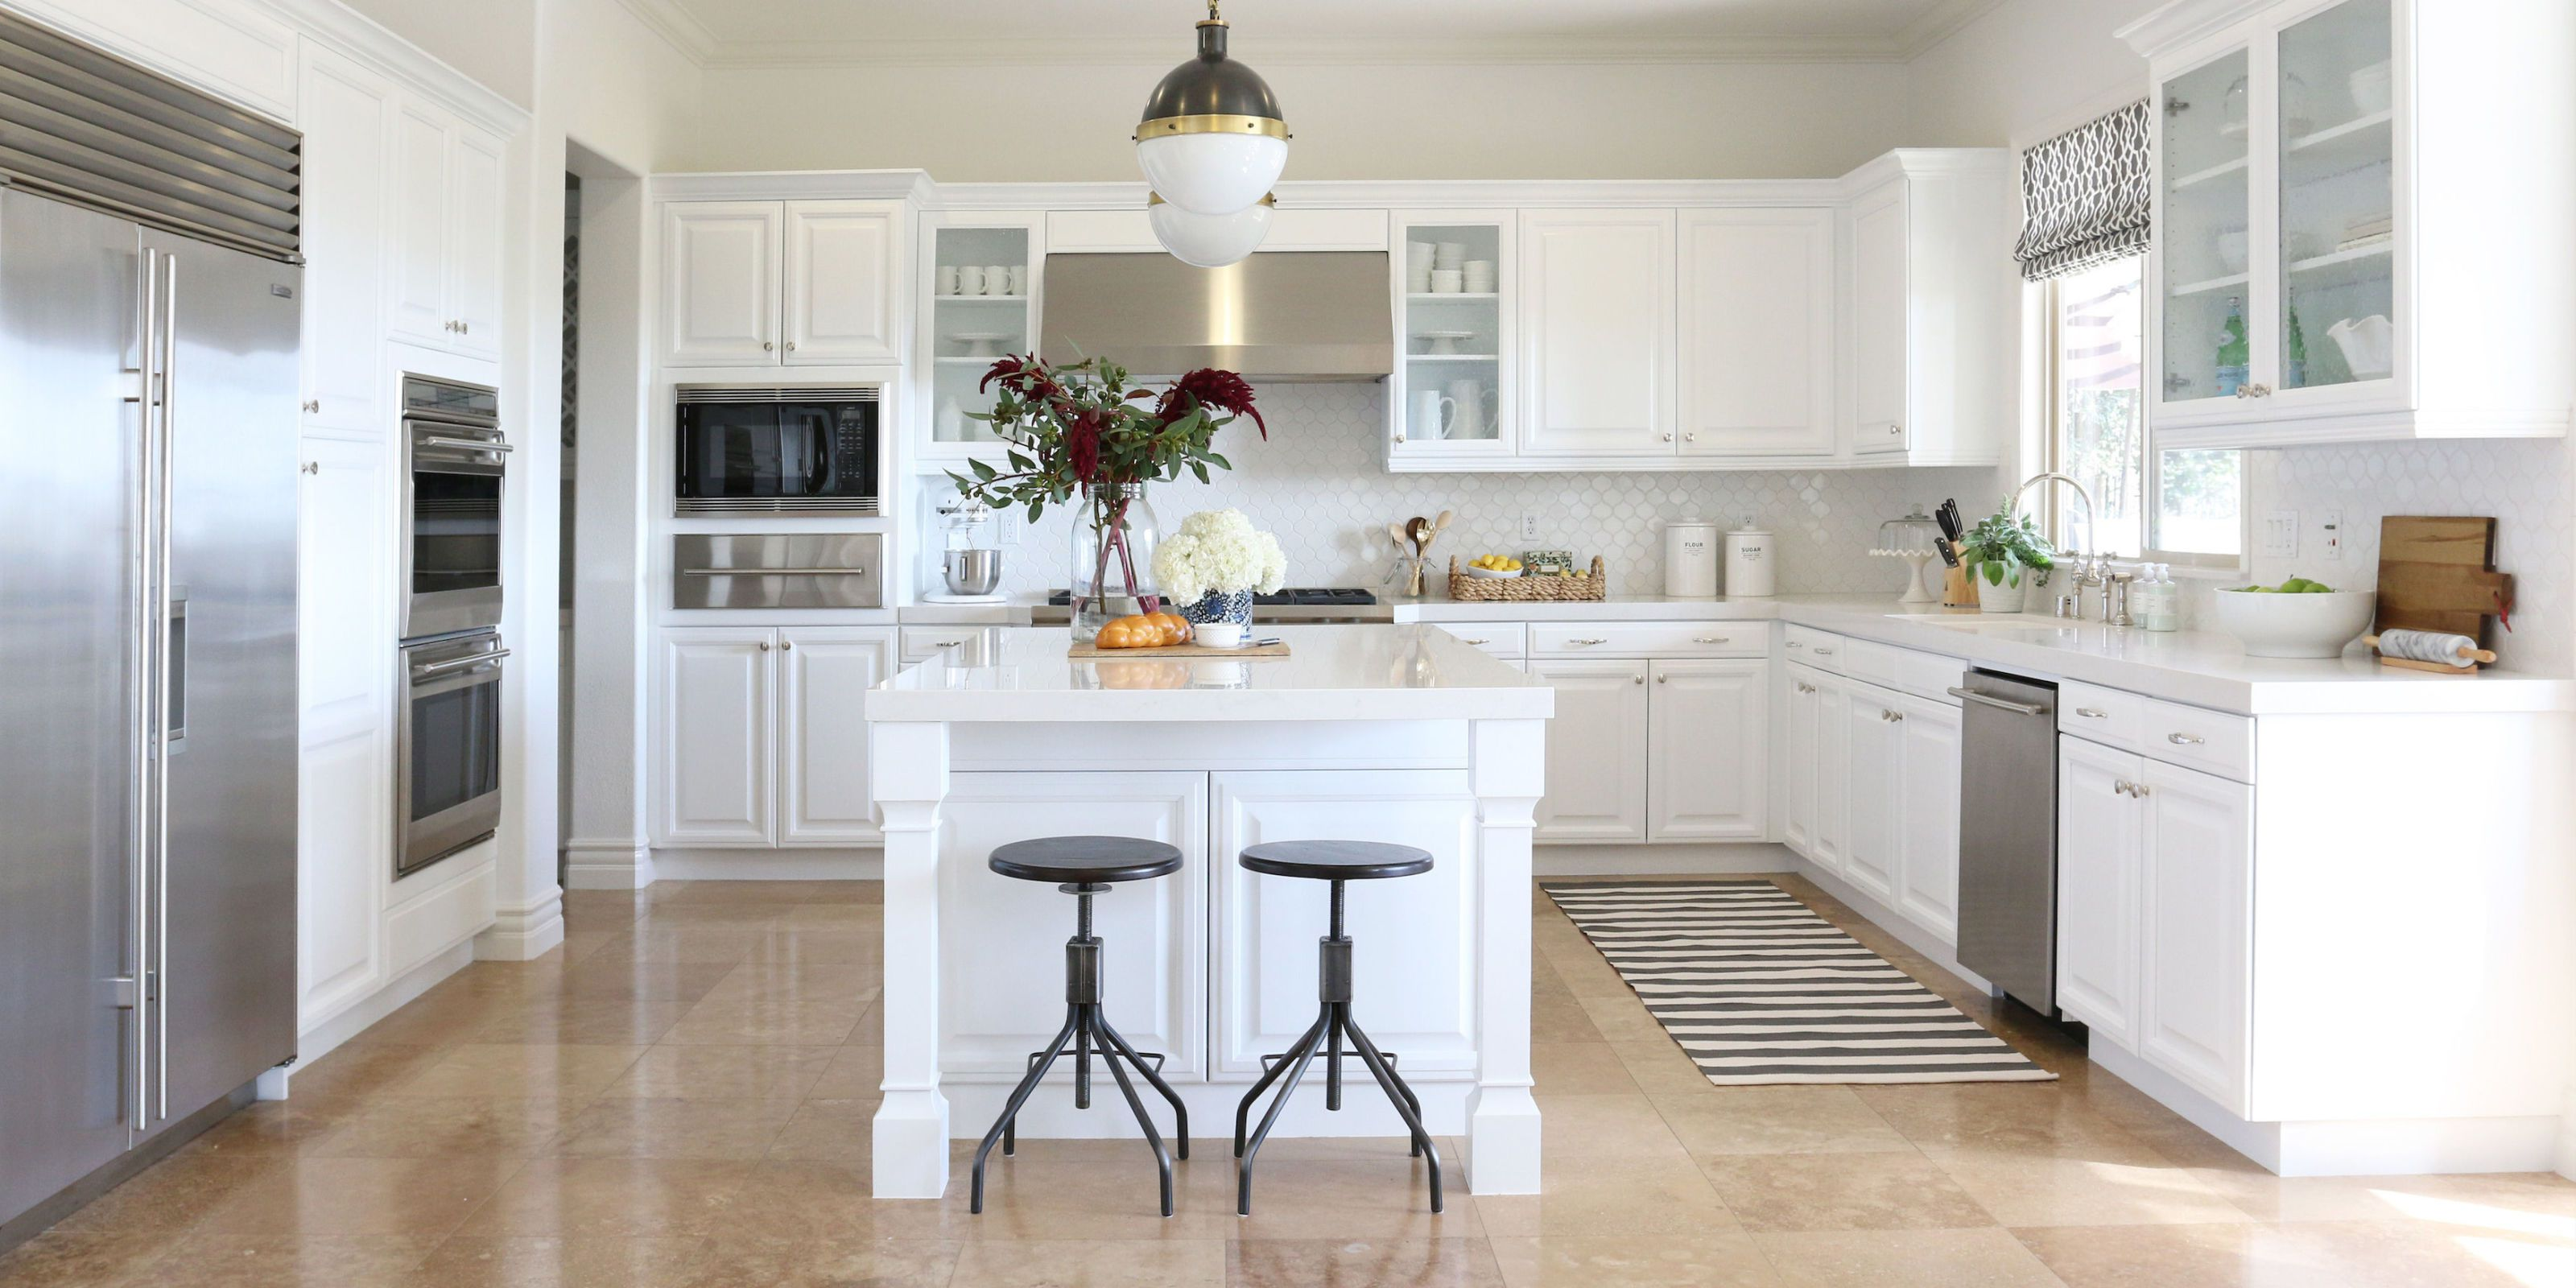 White Kitchen Cabinets Increase Hygiene of Your Place